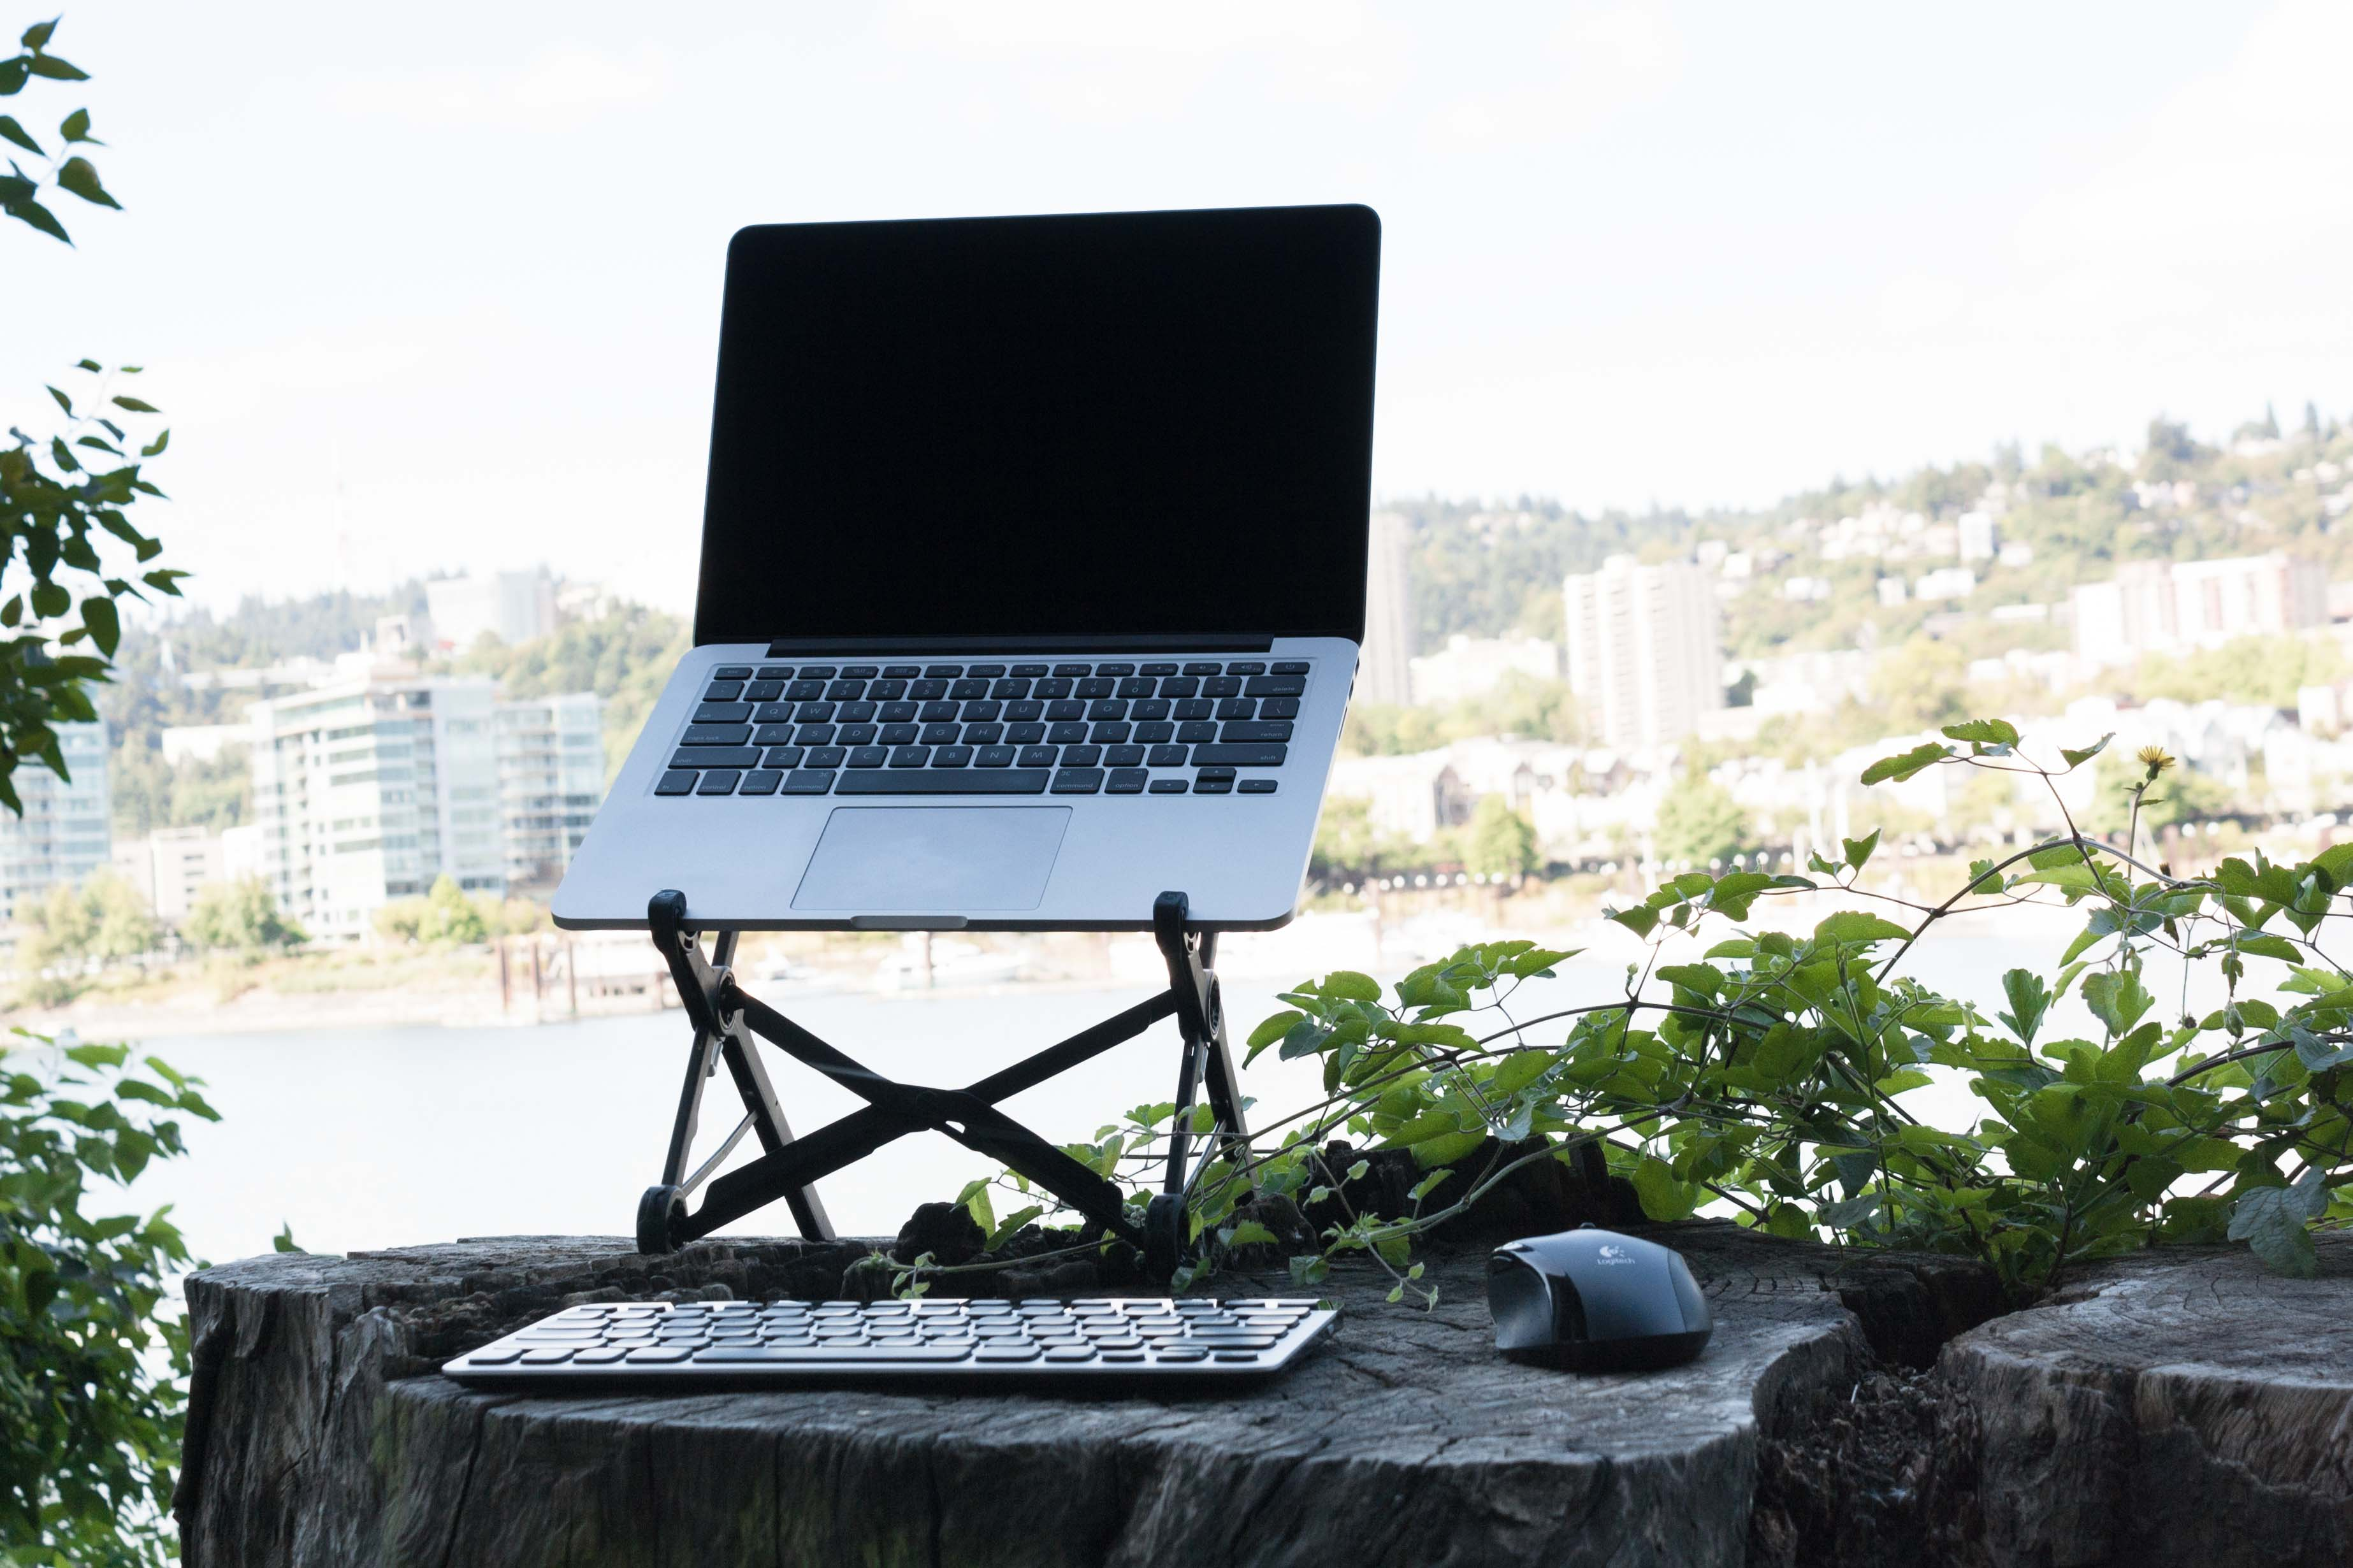 Laptop in a Fully Roost with keyboard and mouse on tree stump beside river